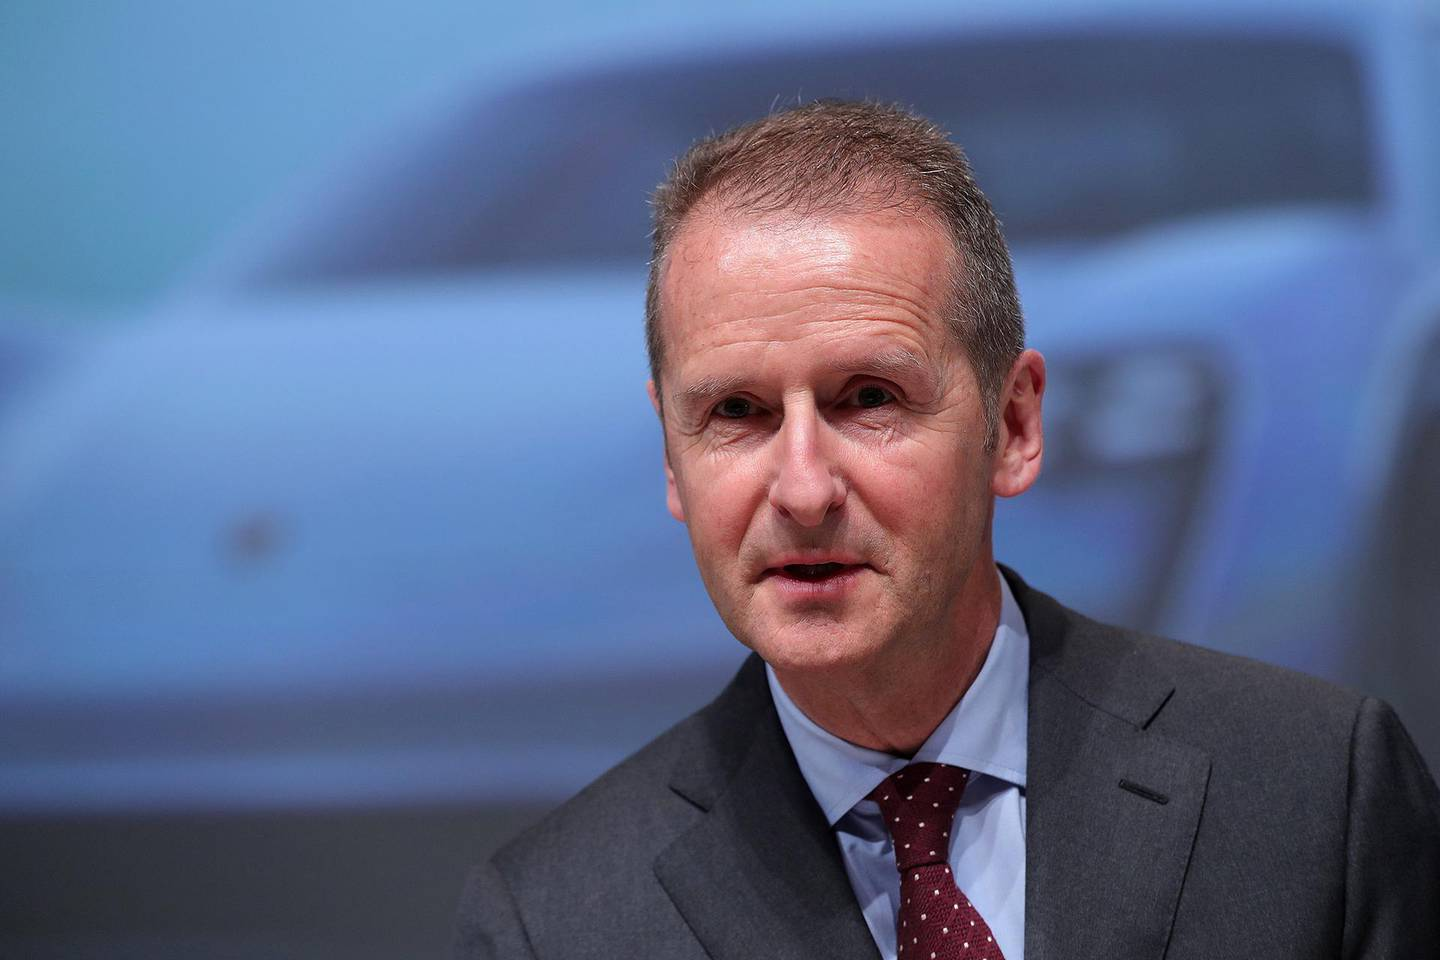 Herbert Diess, chief executive officer of Volkswagen AG (VW), speaks during the automaker's annual general meeting in Berlin, Germany, on Thursday, May 3, 2018. Diess pledged to step up integrity and compliance efforts as part of the German manufacturer's deepest overhaul since the diesel-emissions scandal came to light in 2015. Photographer: Krisztian Bocsi/Bloomberg